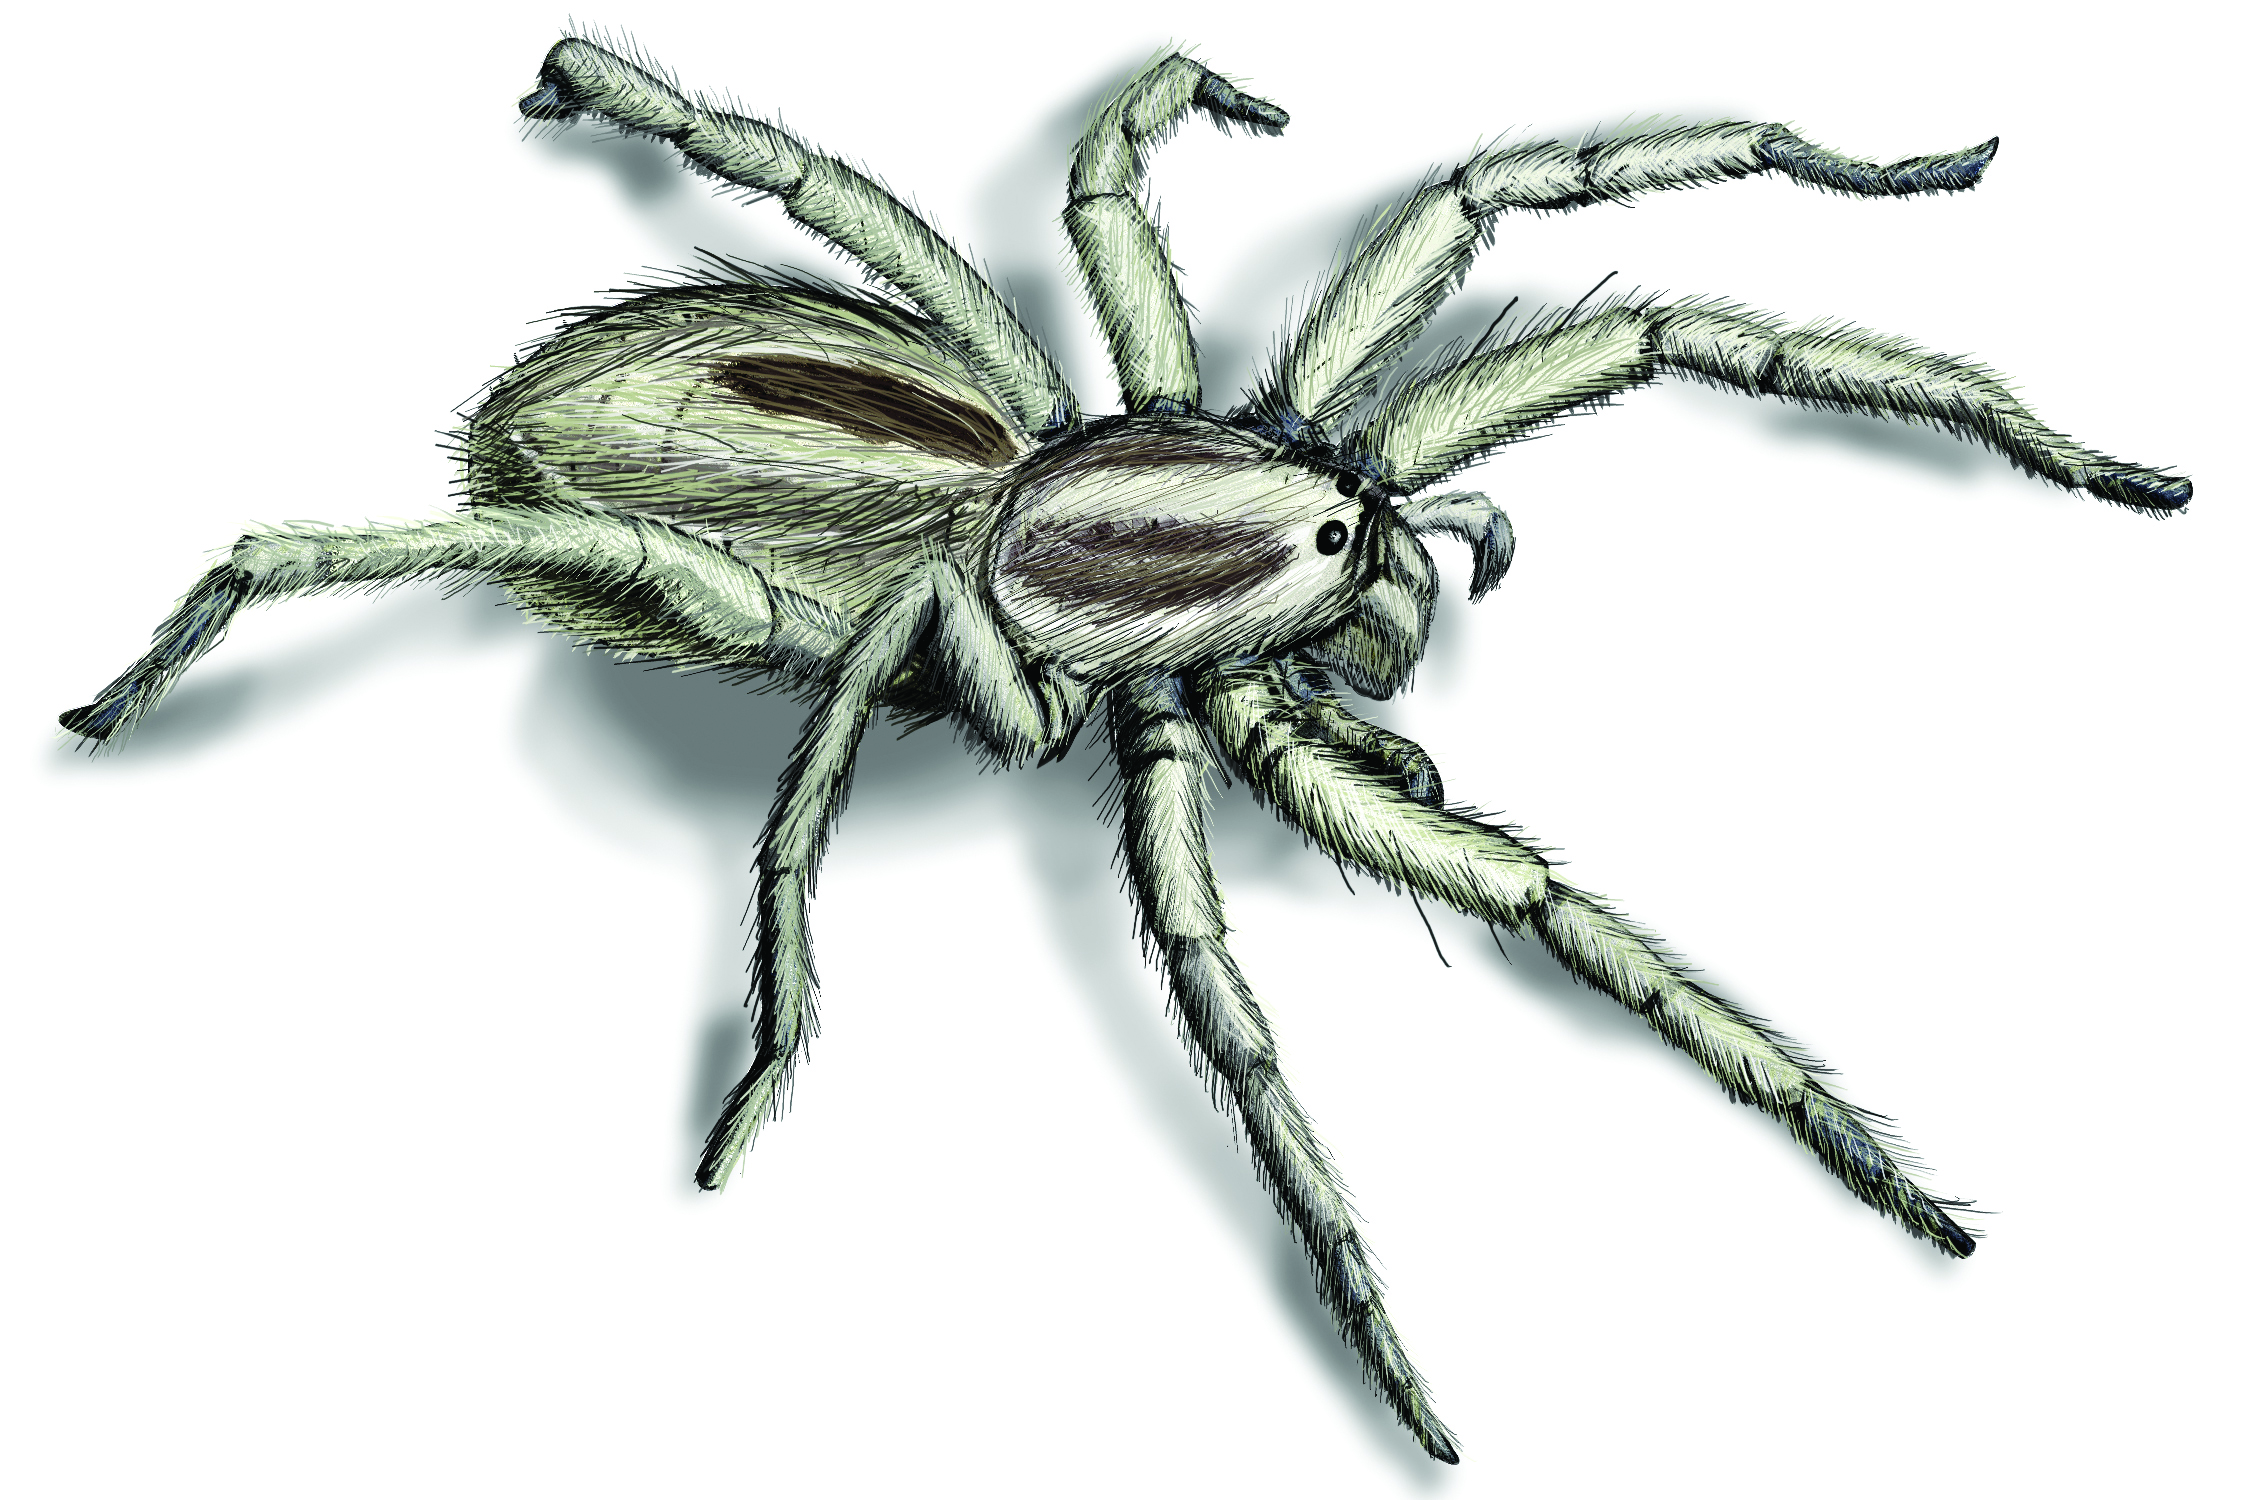 Wolf Spider Infestation - How to Get Rid of Wolf Spiders